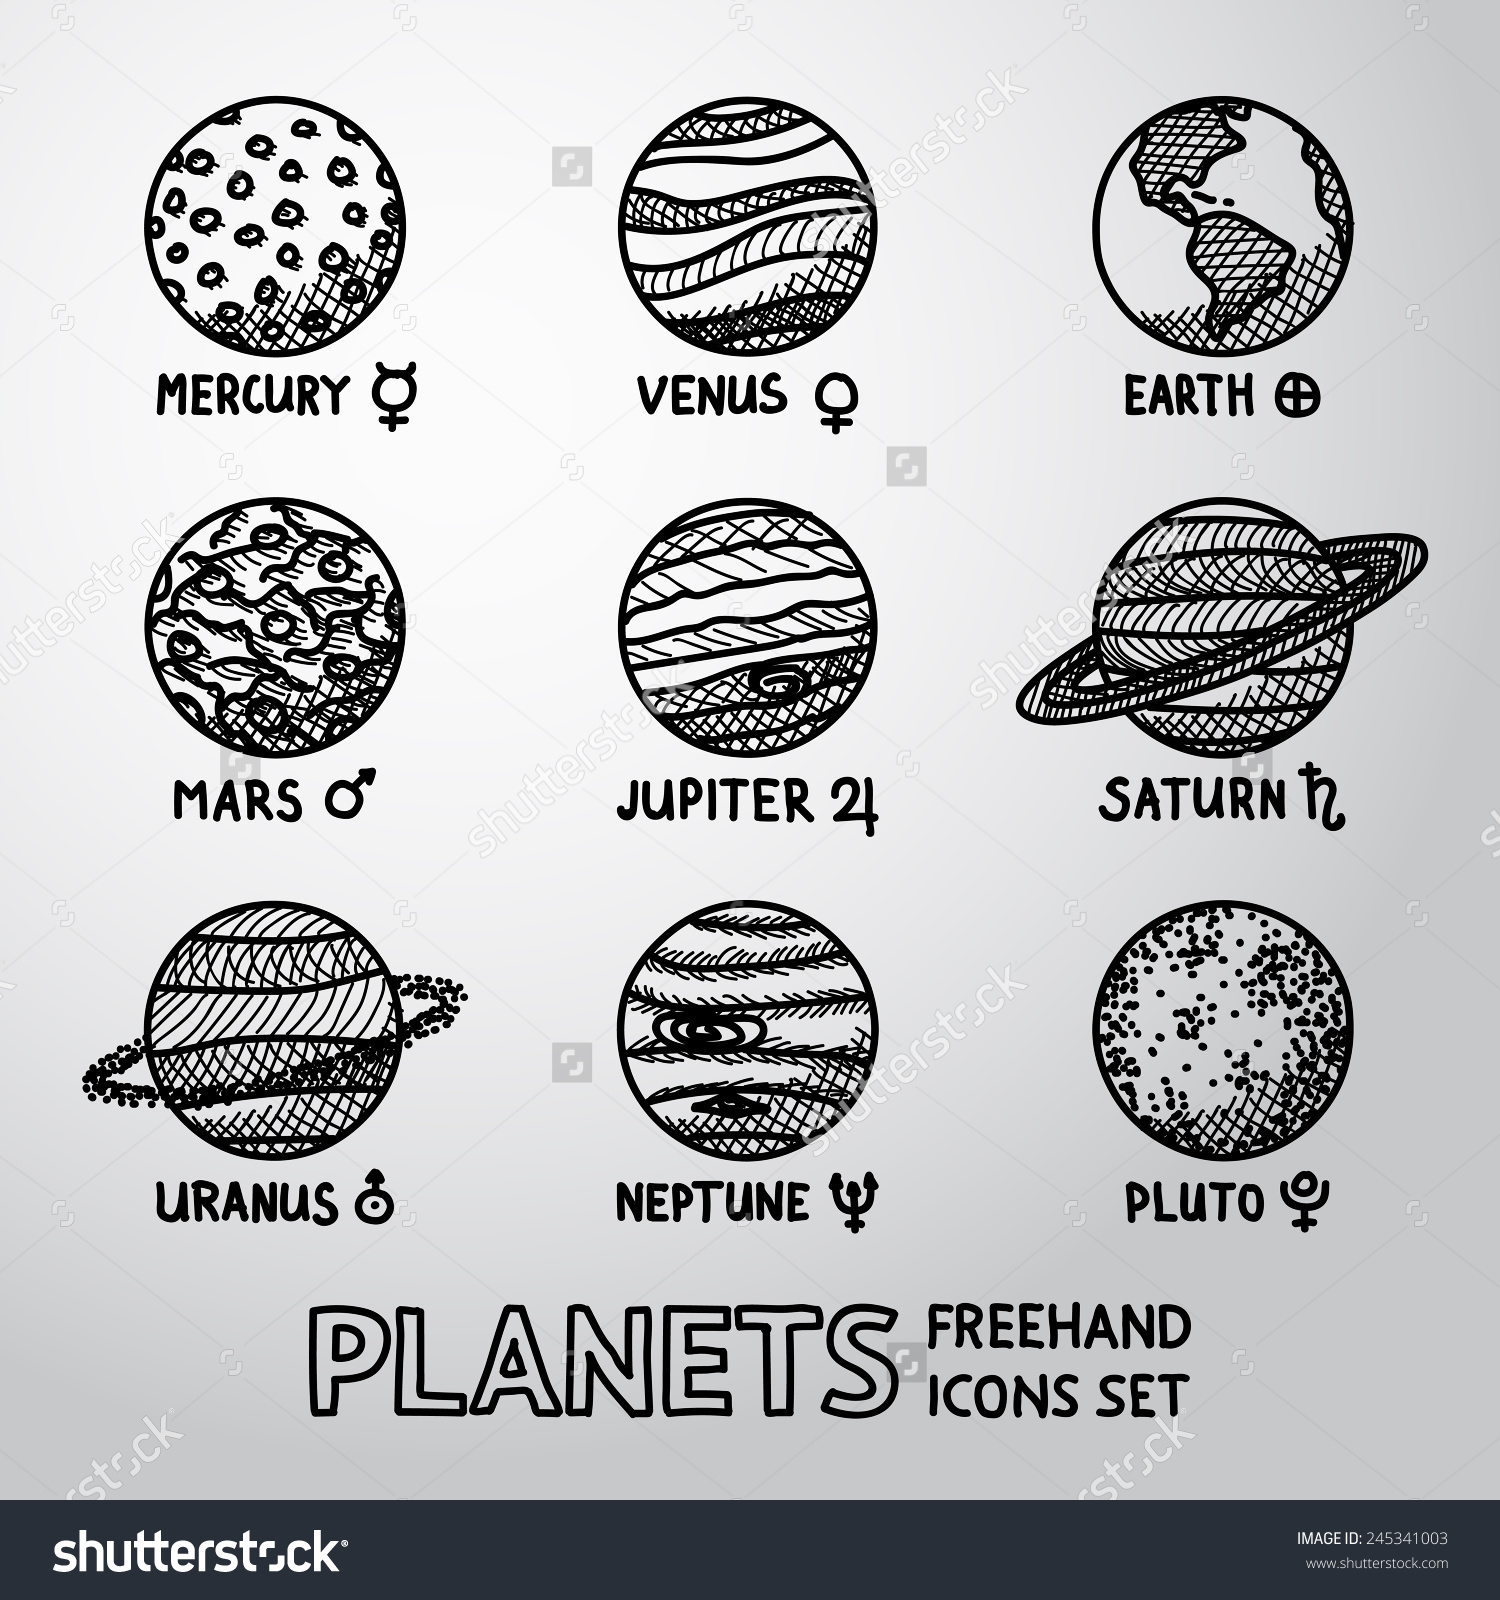 Drawn planets hand drawn Drawing on planets Tumblr Image